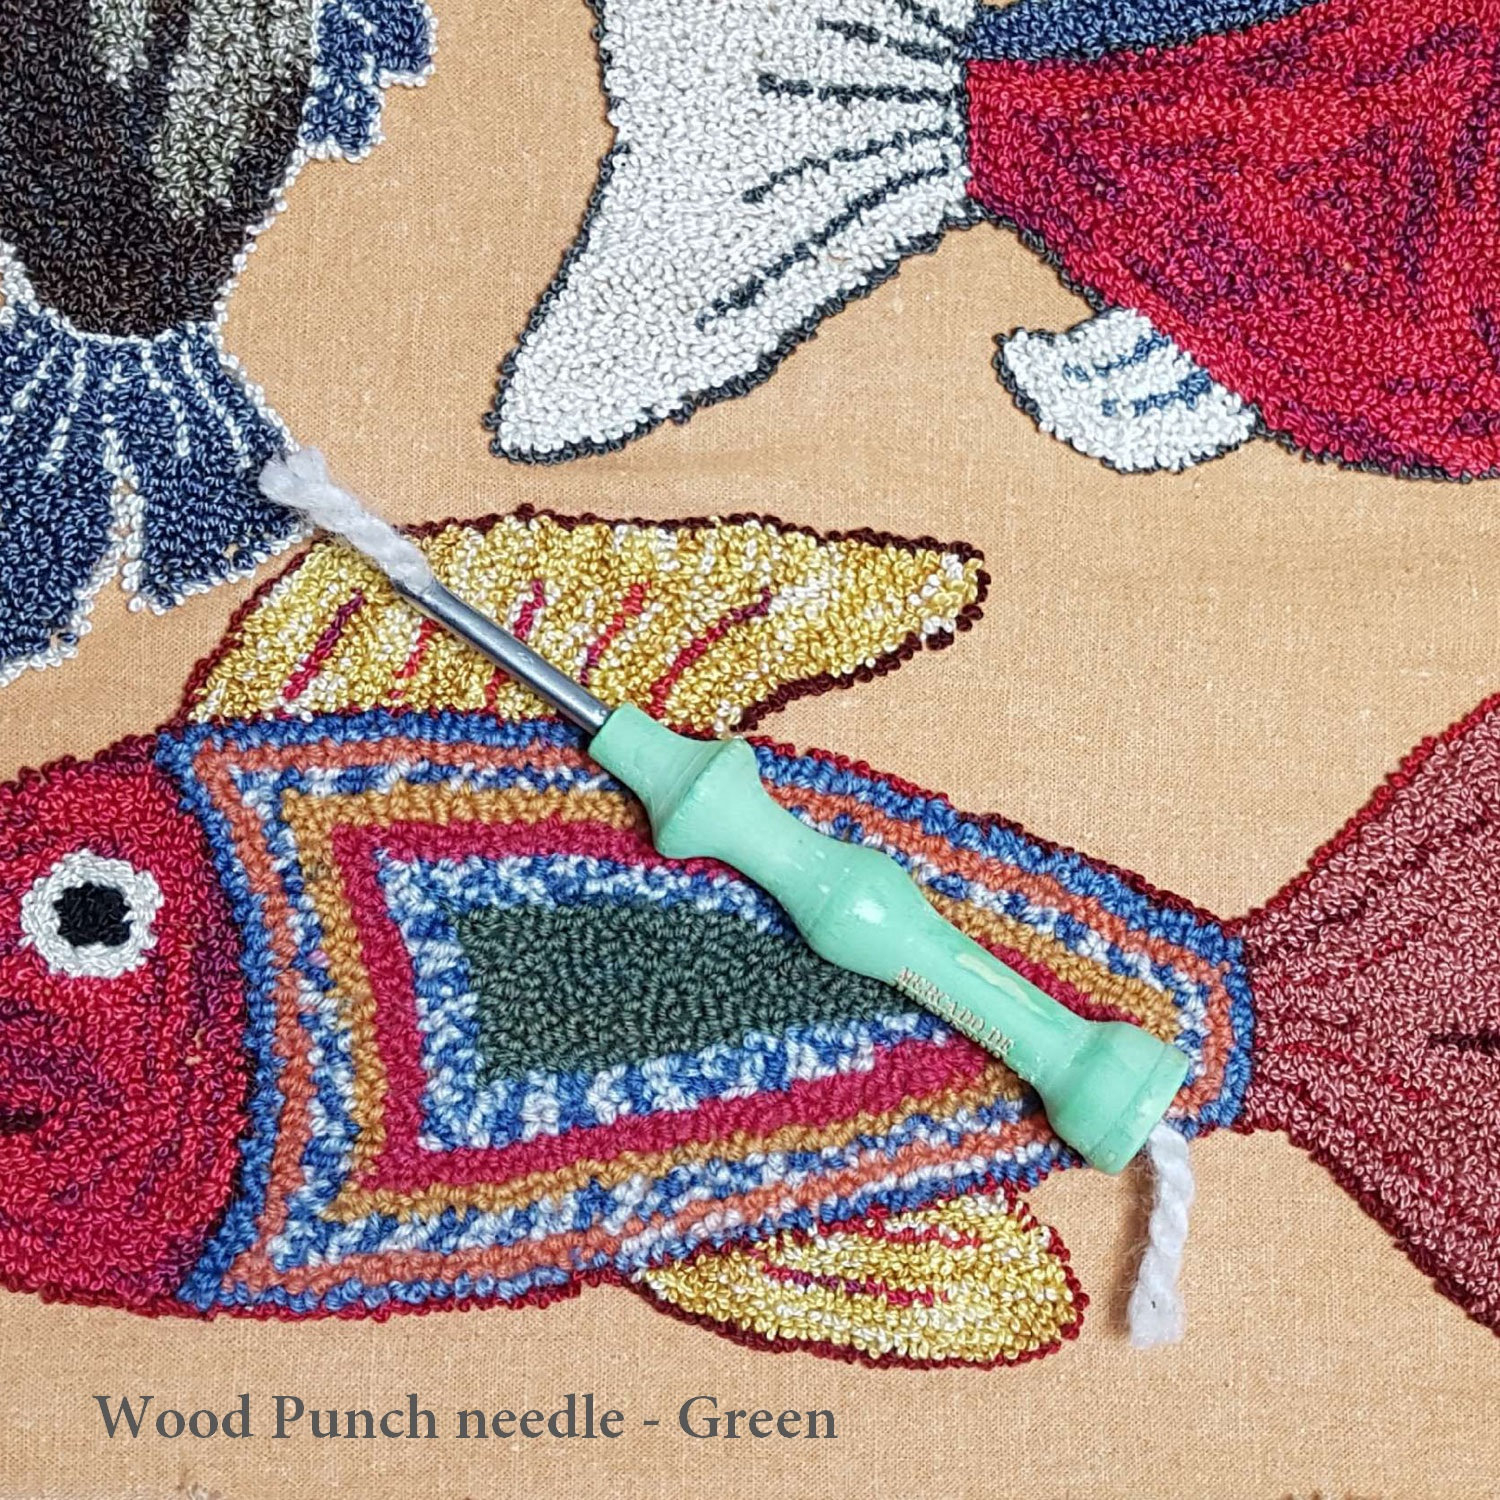 Free Punch Needle Embroidery Patterns Punch Needle Embroidery Needle Punching Supplies Tapestry Rug Hooking Needle Wood Handle Handmade Vintage Style